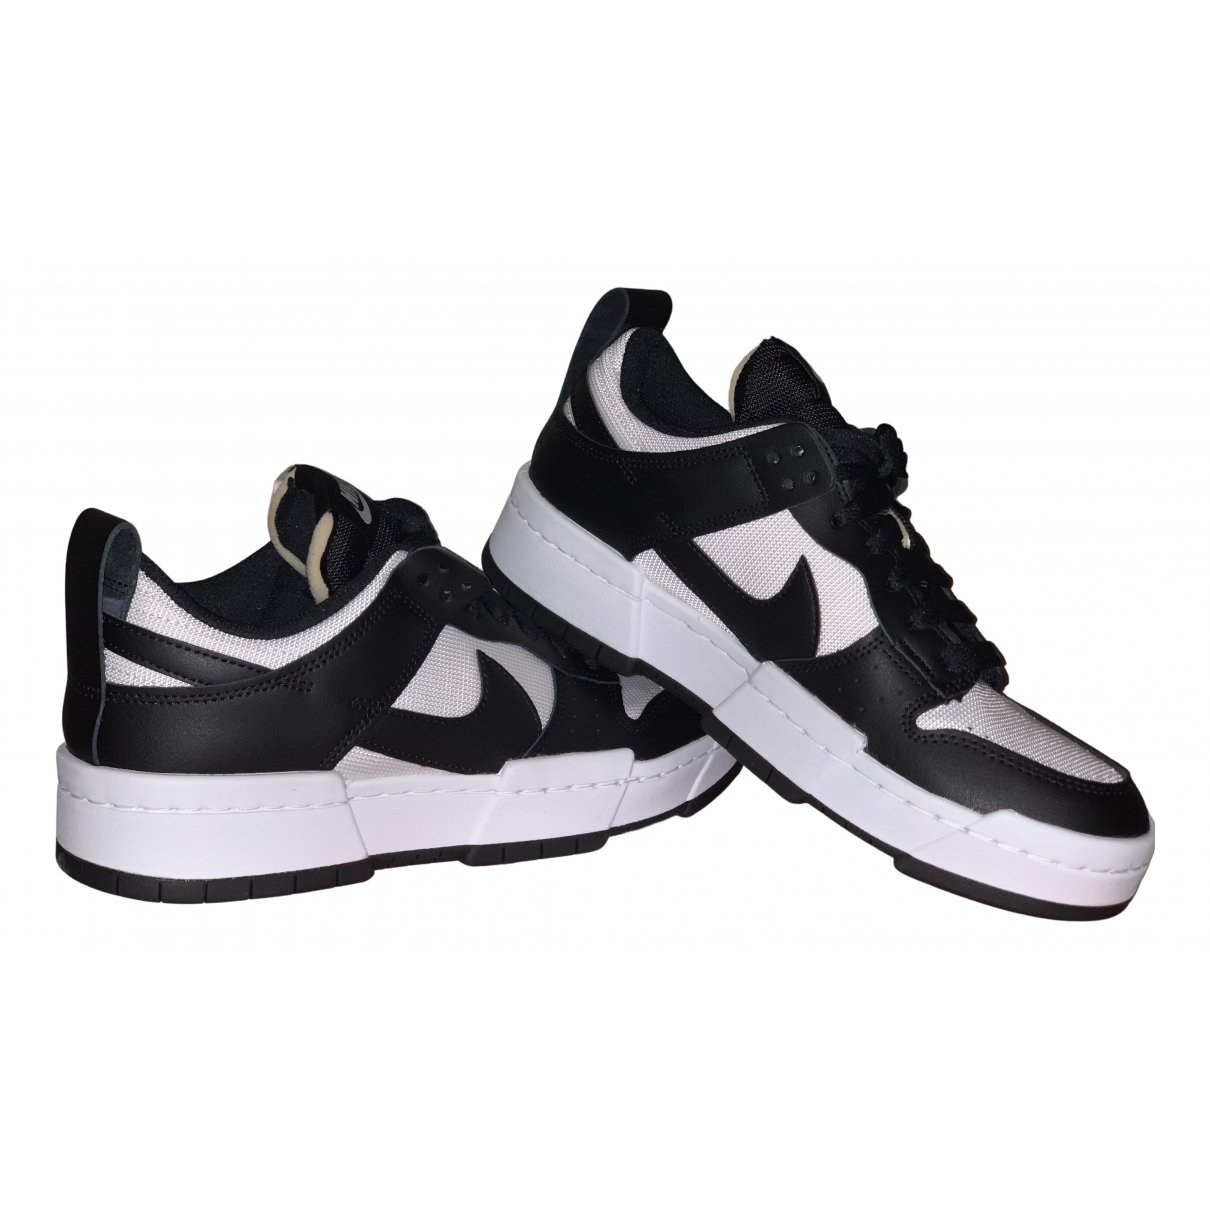 Nike SB Dunk  Black Leather Trainers for Women 6.5 UK